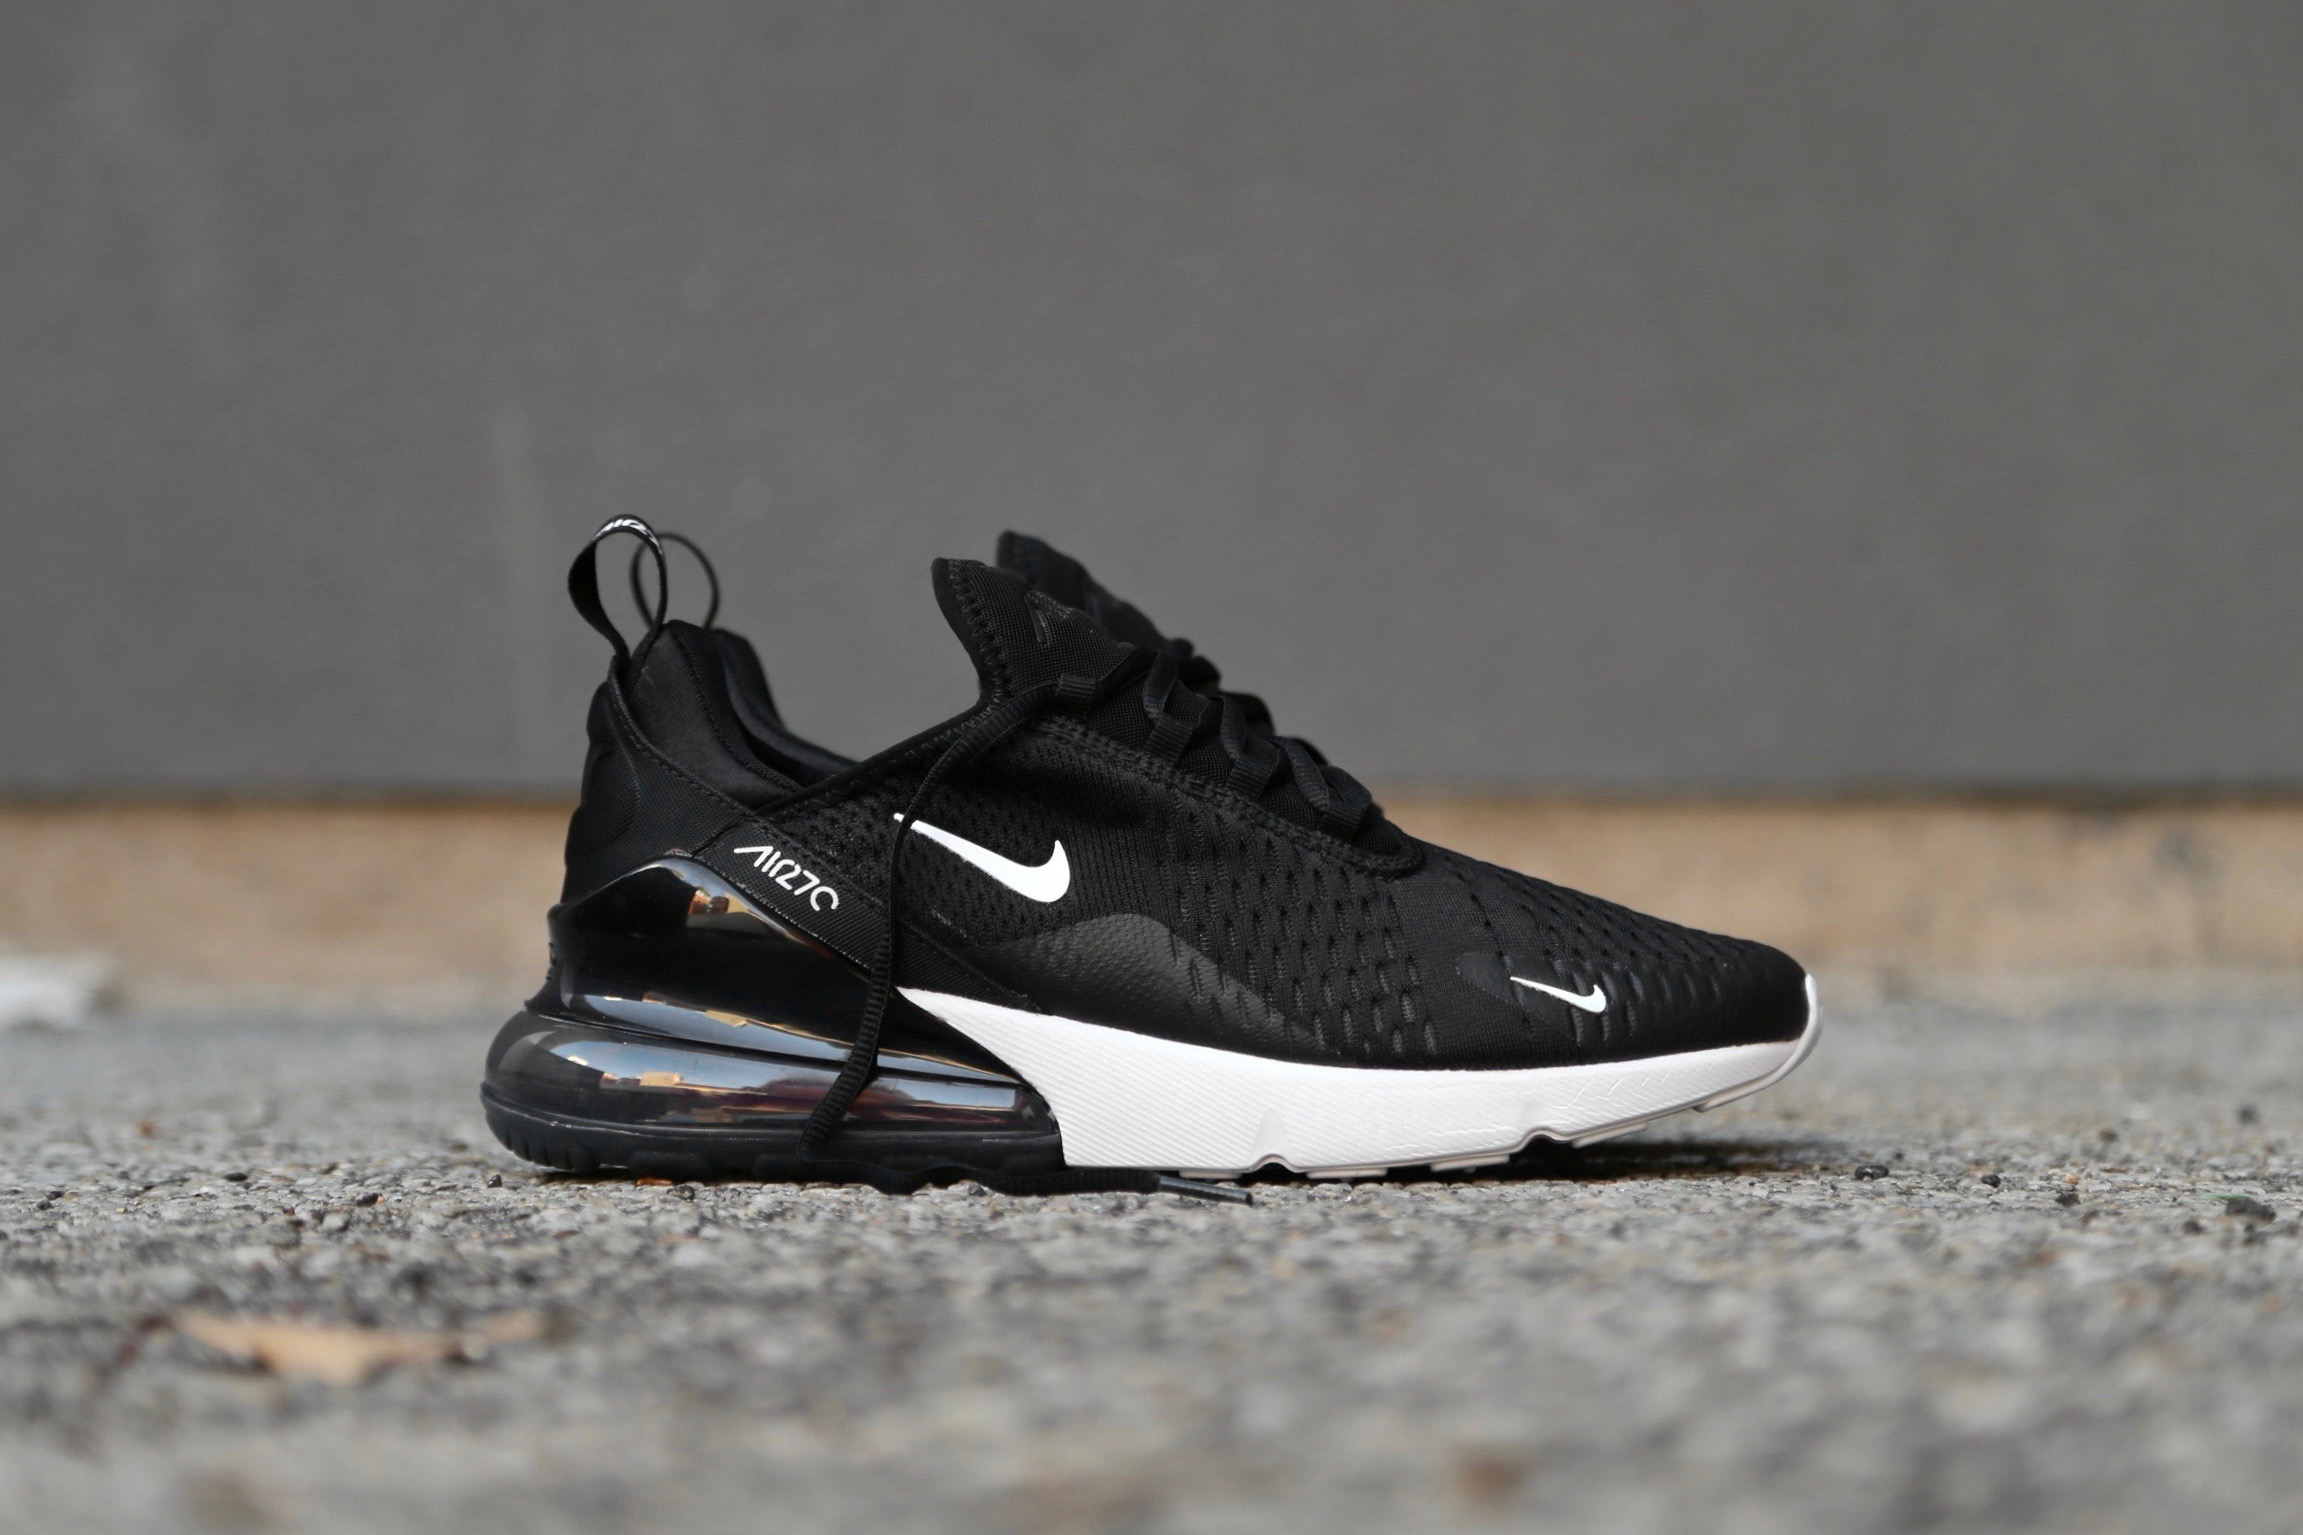 Nike Air Max 270 in Black Anthracite White Solar Red